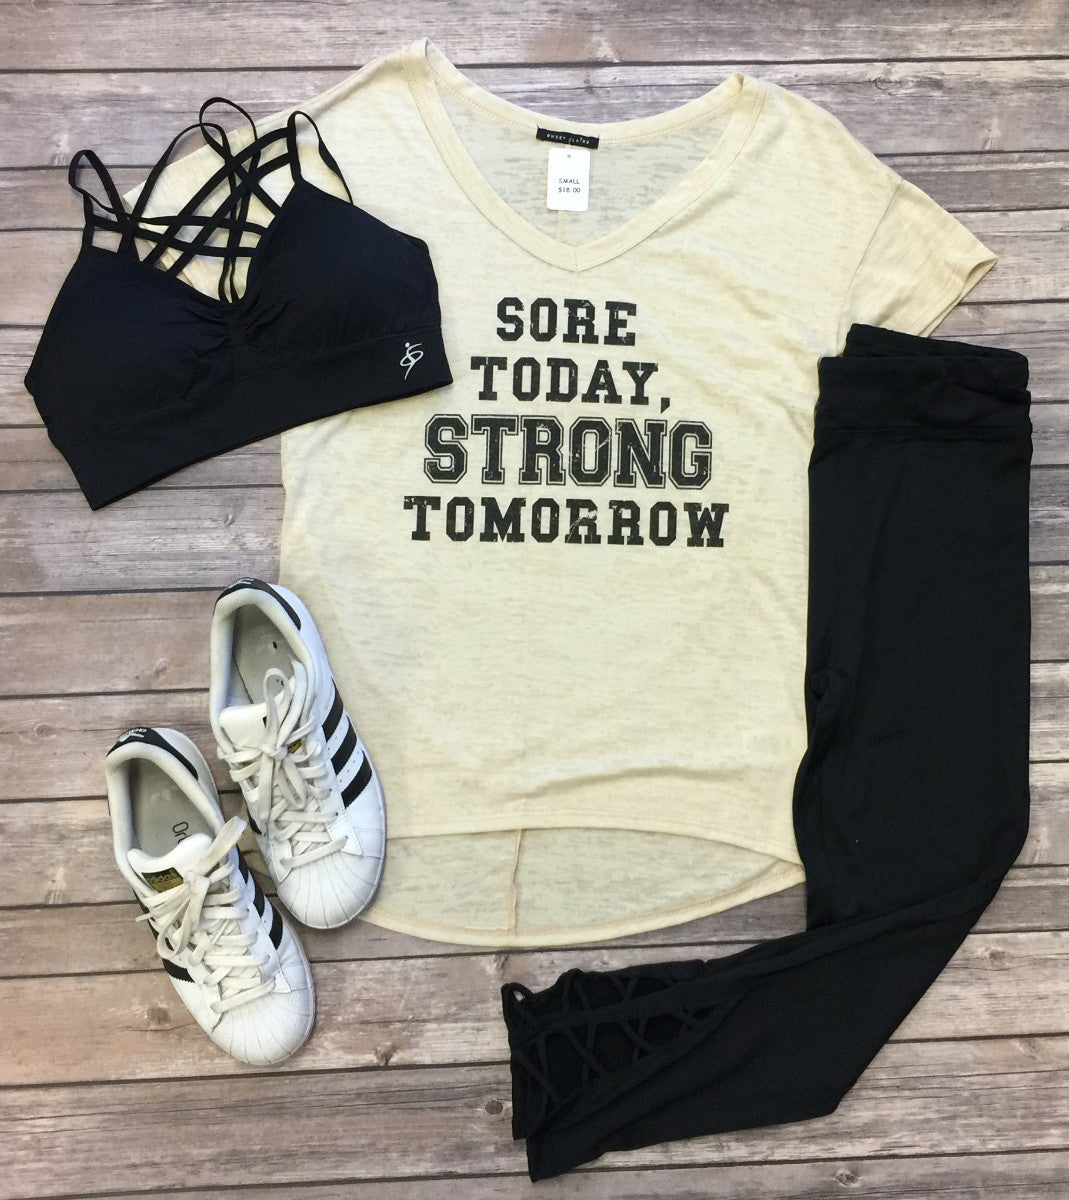 Sore Today. Strong Tomorrow.